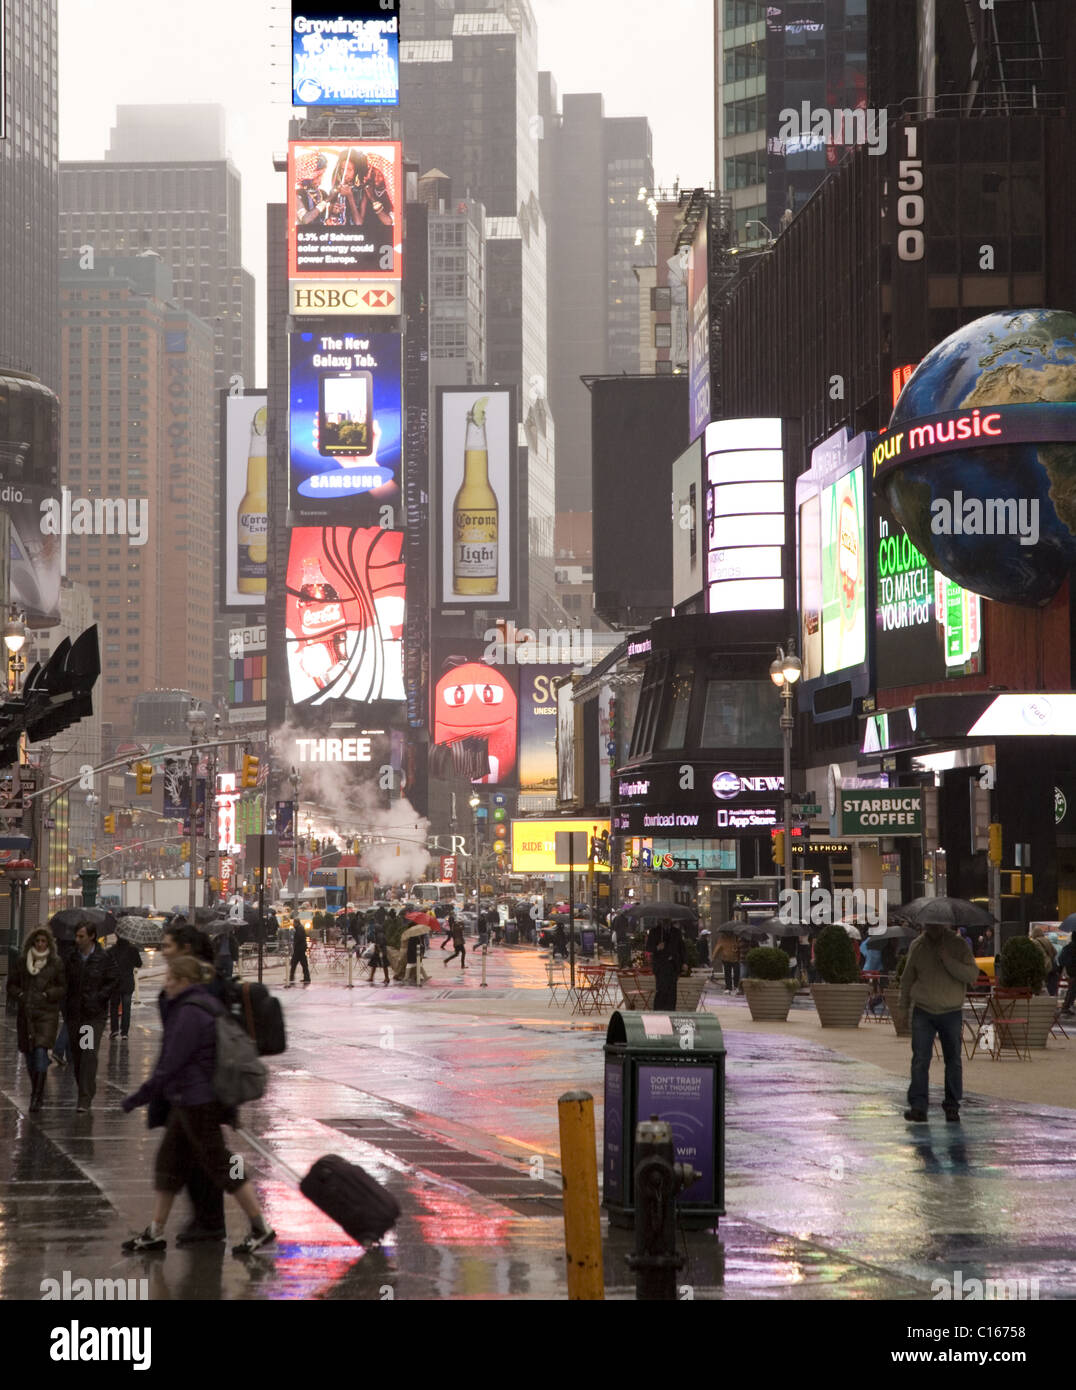 Rainy day in NYC. 42nd Street looking up 7th Ave., Times Square. - Stock Image